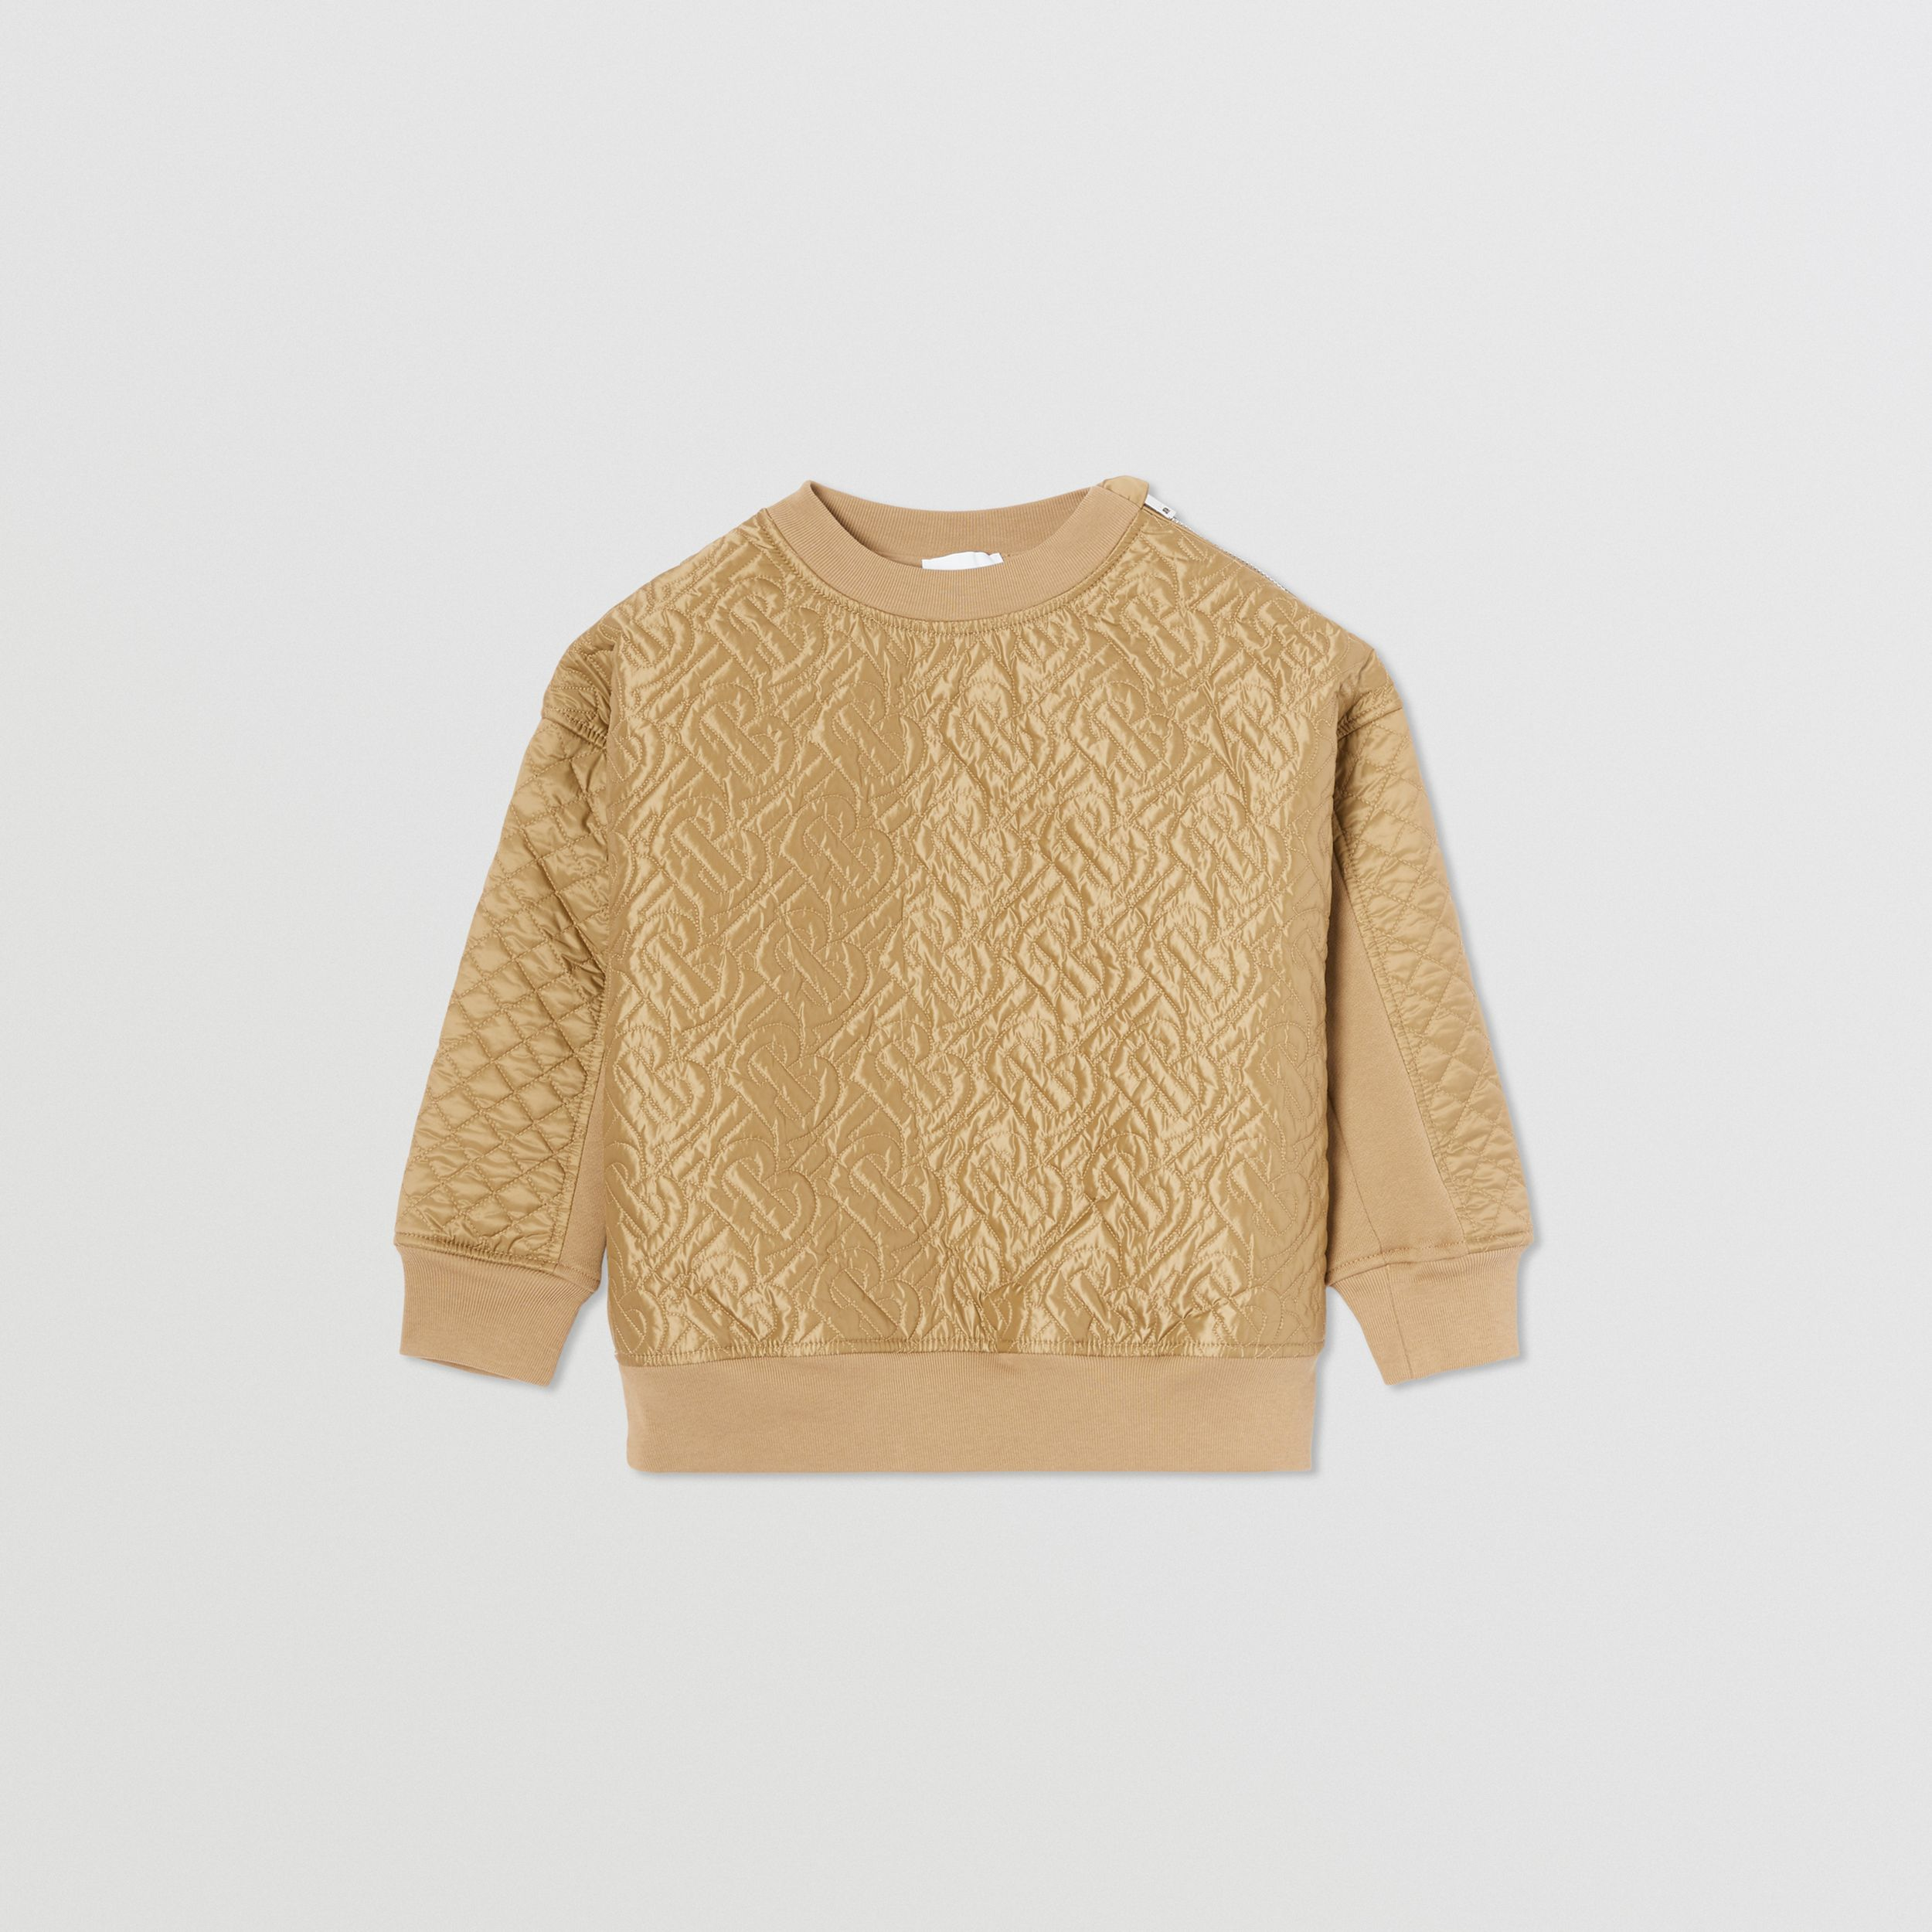 Monogram Quilted Panel Cotton Sweatshirt in Honey | Burberry - 1